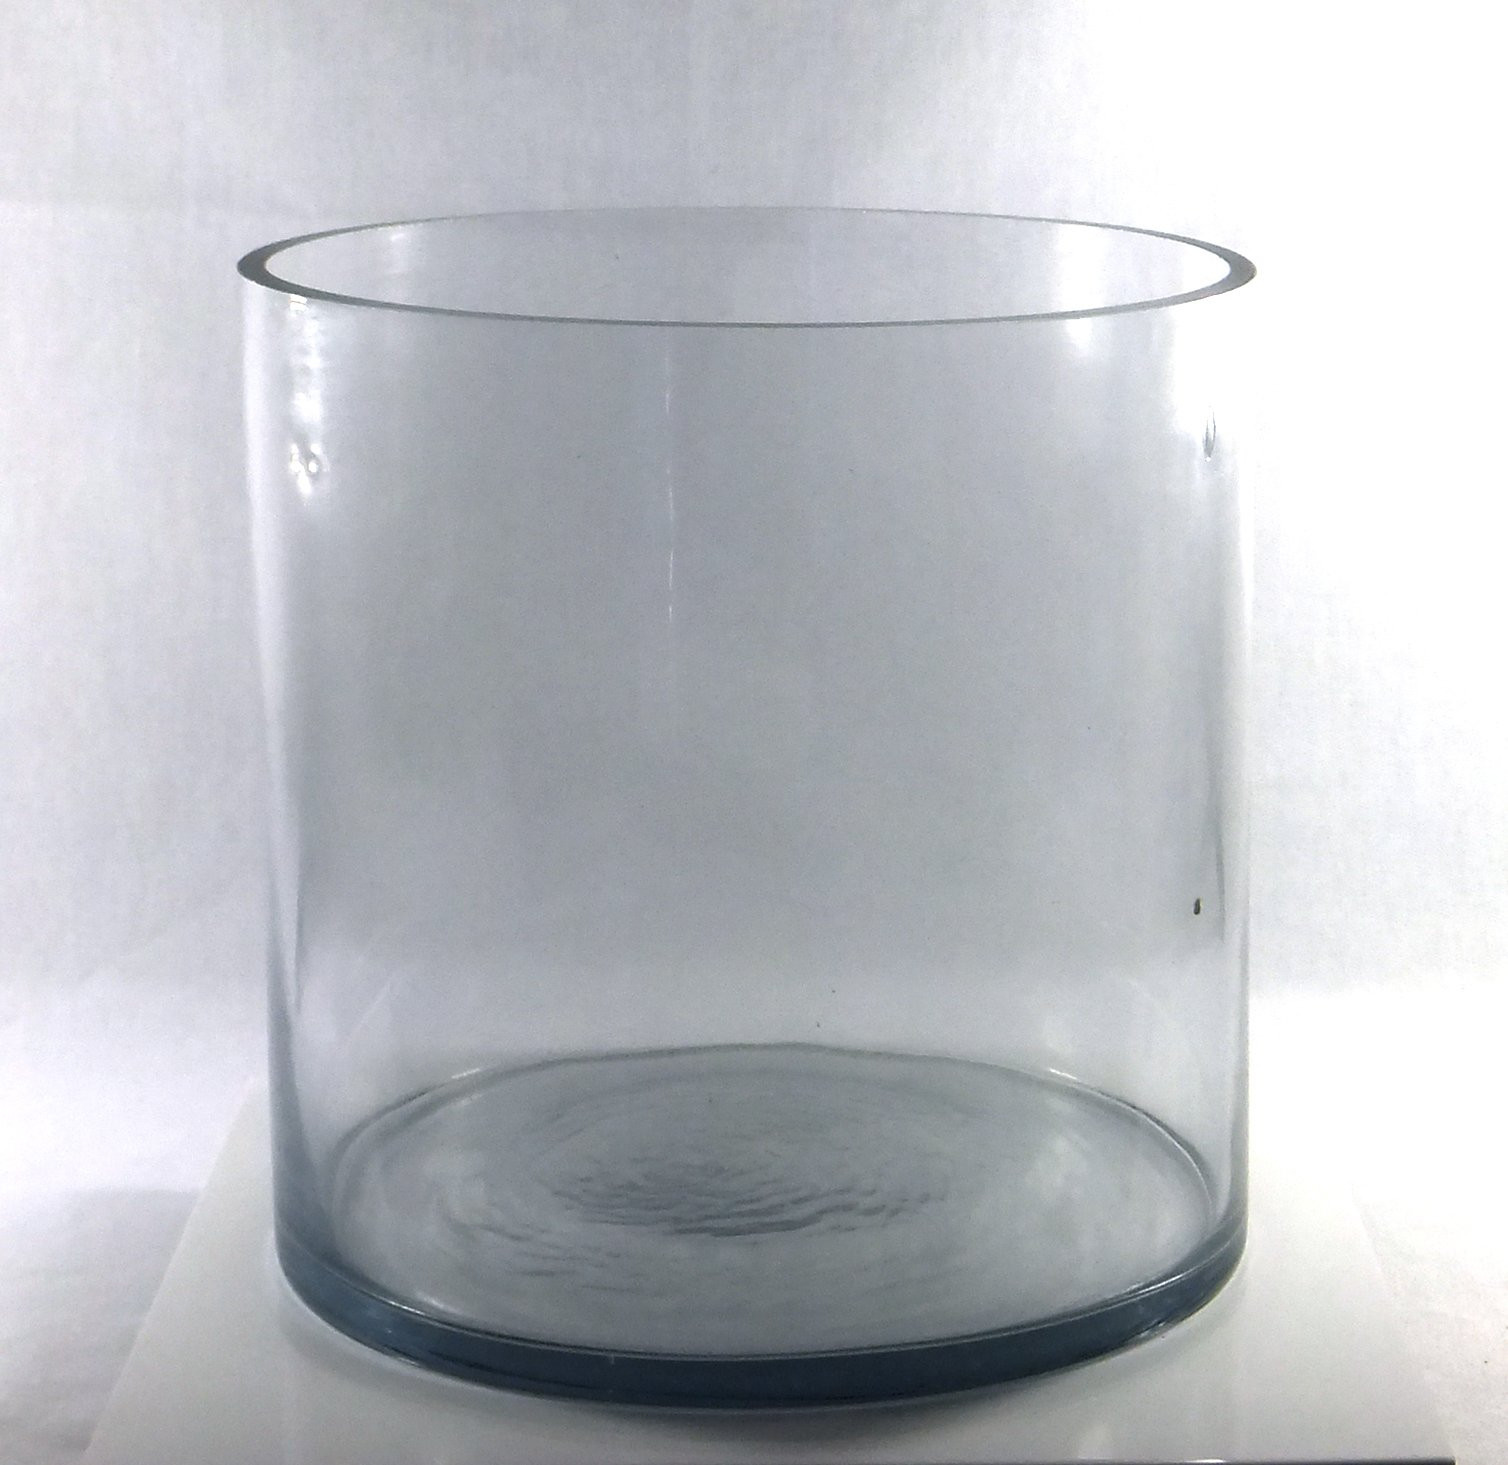 Clear Plastic Vases for Centerpieces Of Buy 8 Inch Round Large Glass Vase 8 Clear Cylinder Oversize Inside 8 Inch Round Large Glass Vase 8 Clear Cylinder Oversize Centerpiece 8x8